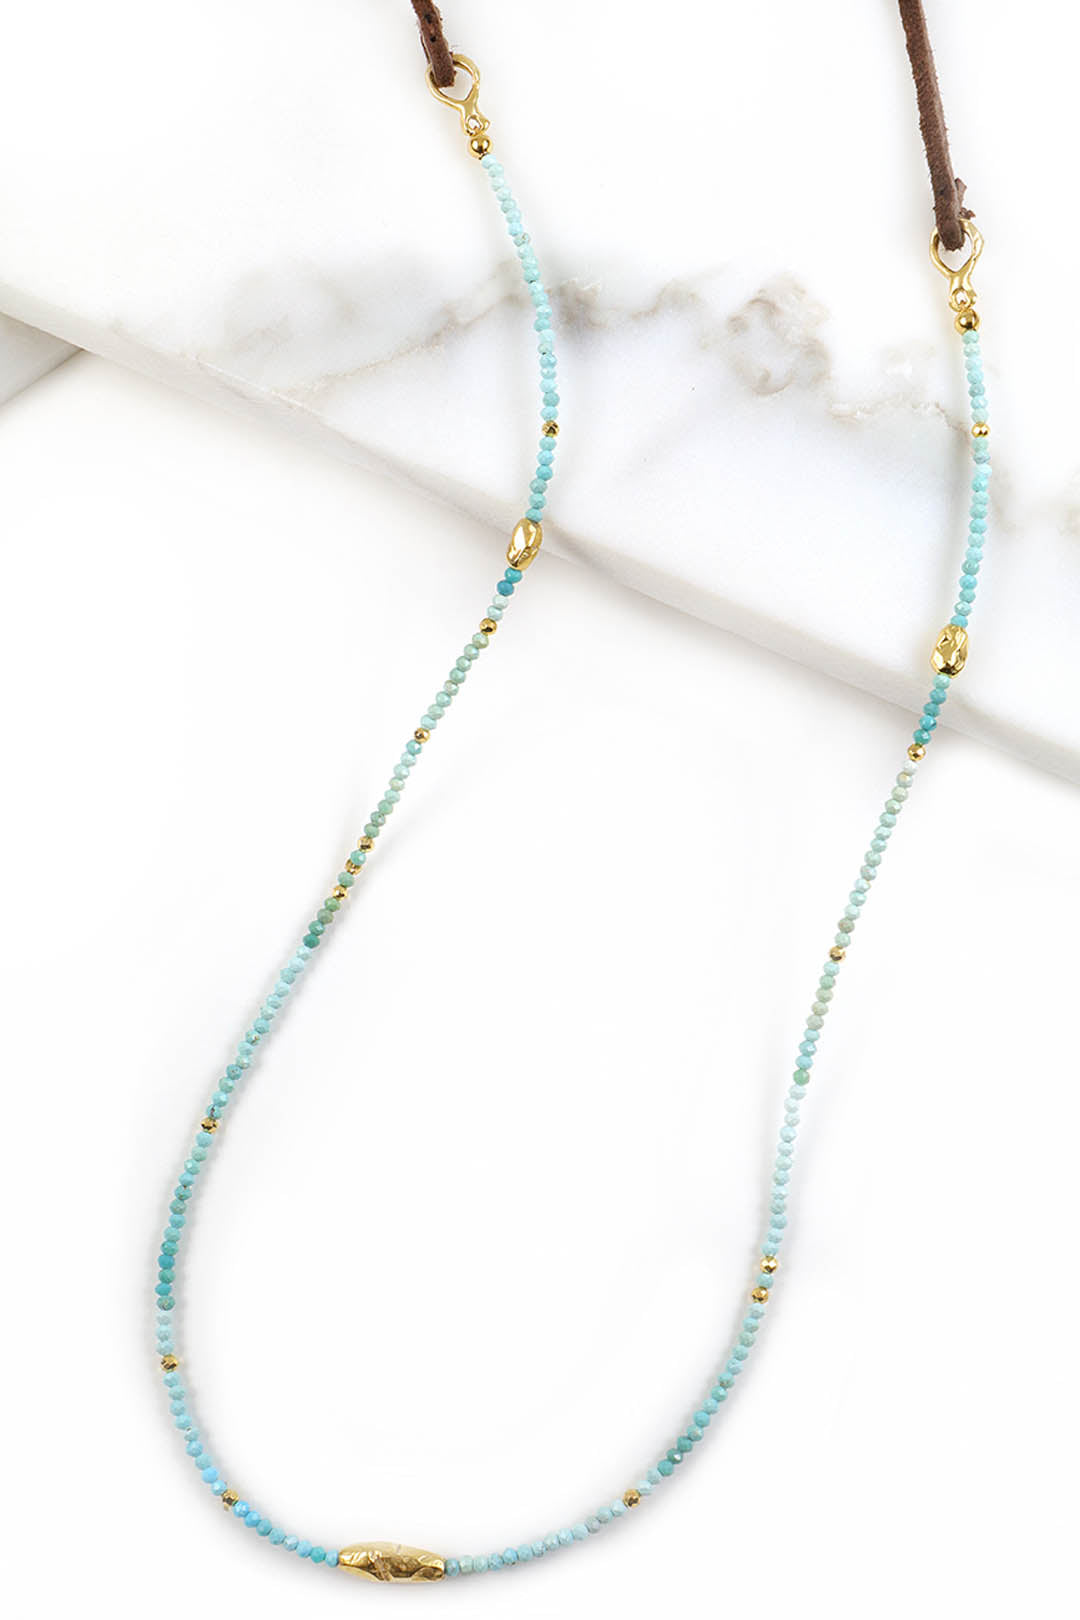 Turquoise and Leather Necklace